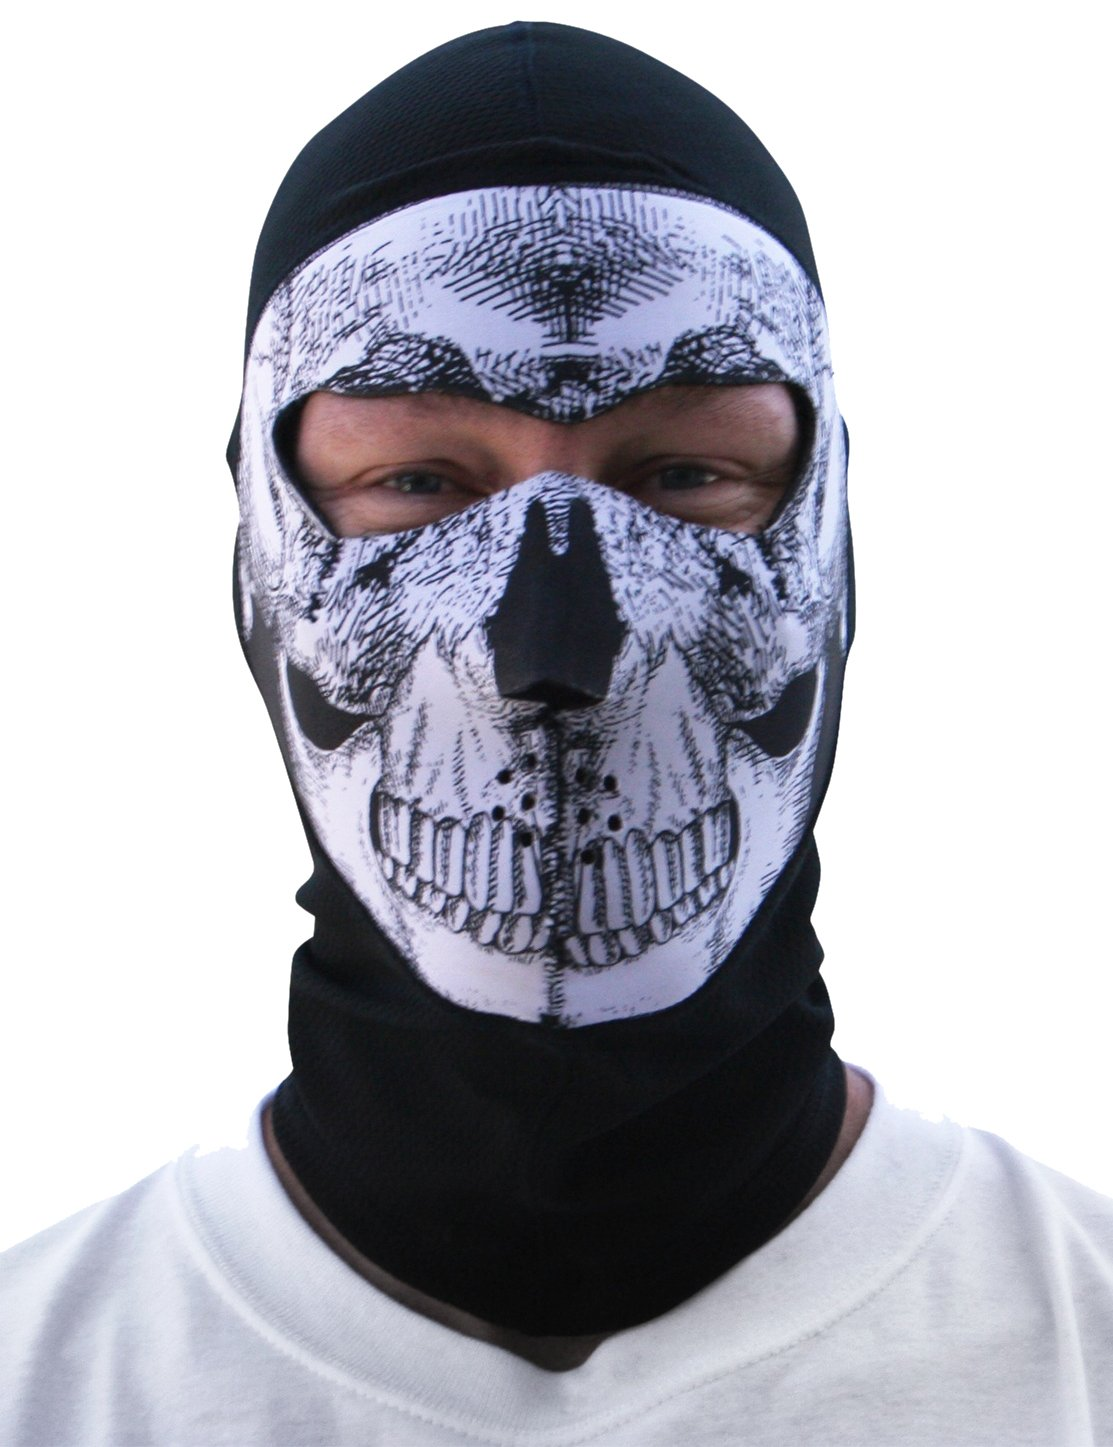 ZANheadgear Coolmax Extreme Balaclava with Full Skull Mask (Black and White) Dreme Corp -- Dropship 4002203